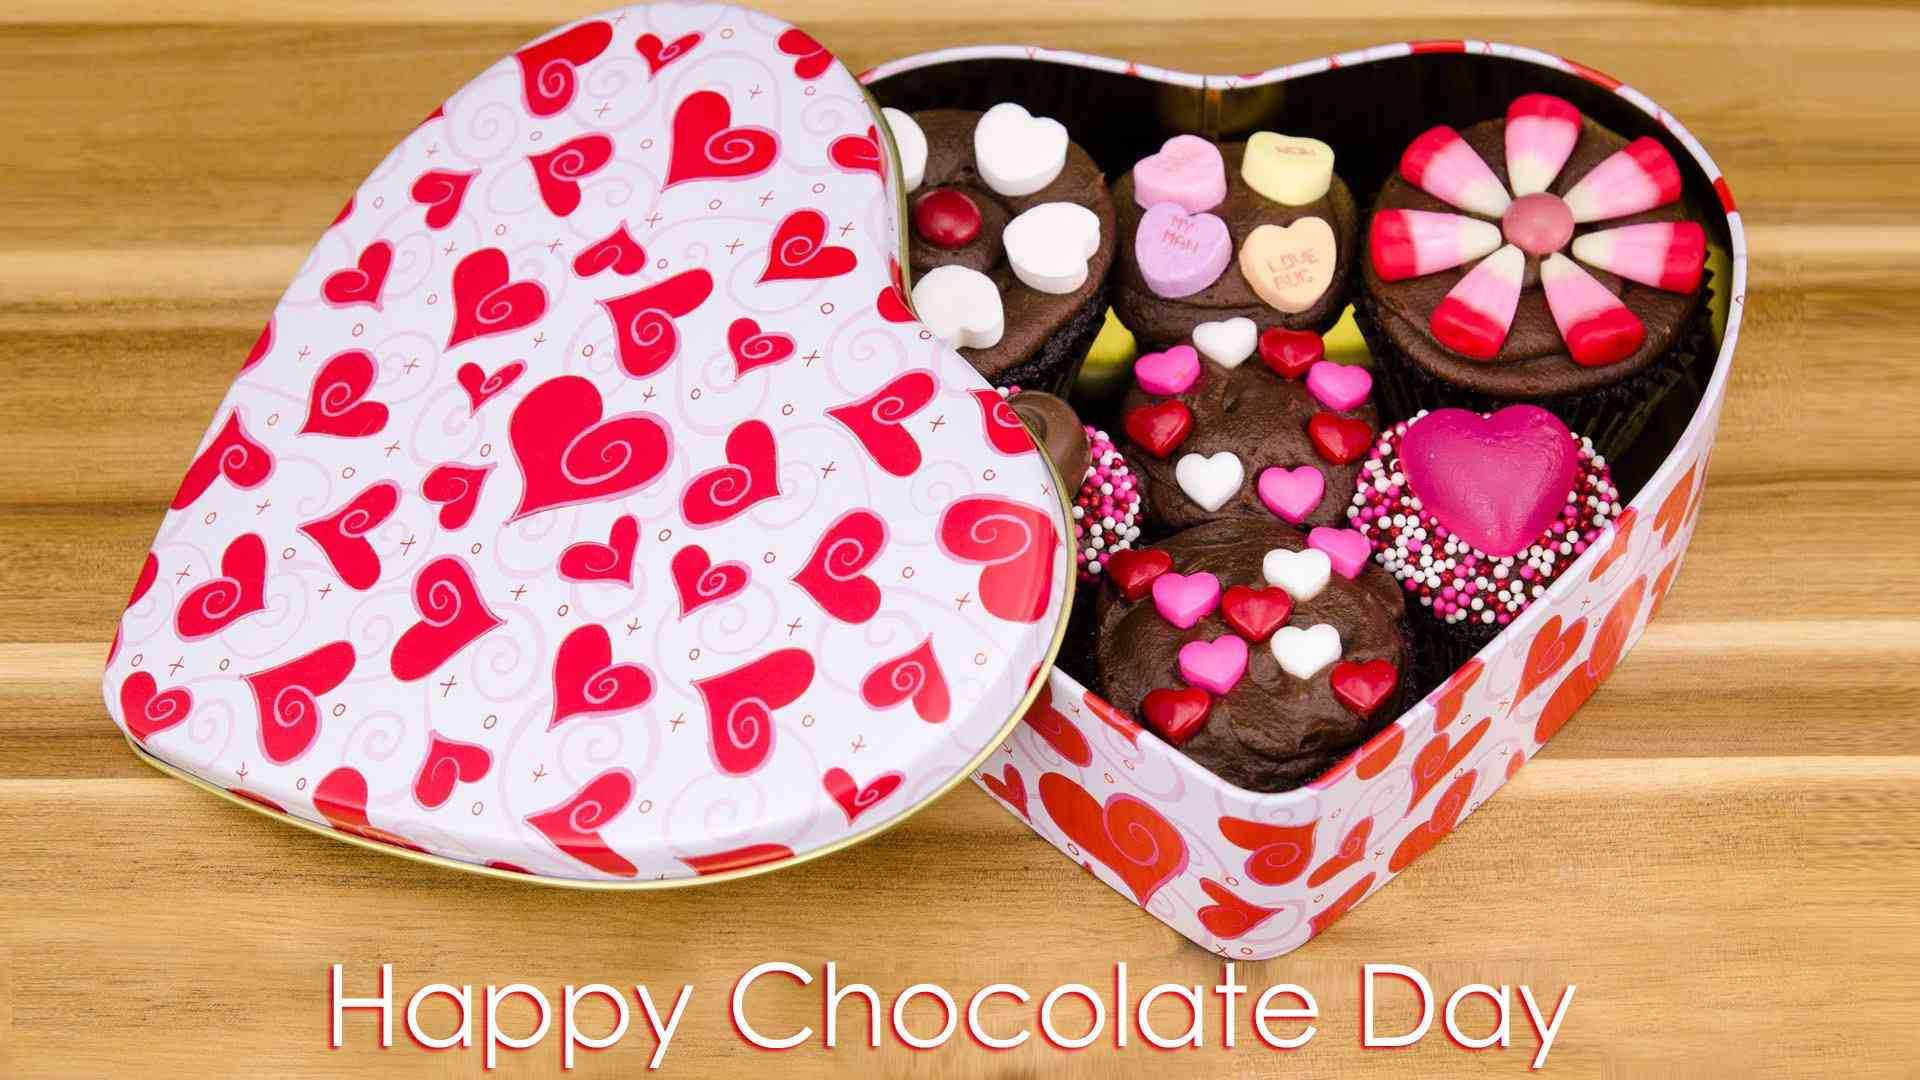 Happy Chocolate day Image, Photos, Pics & Wallpapers 2020 HD